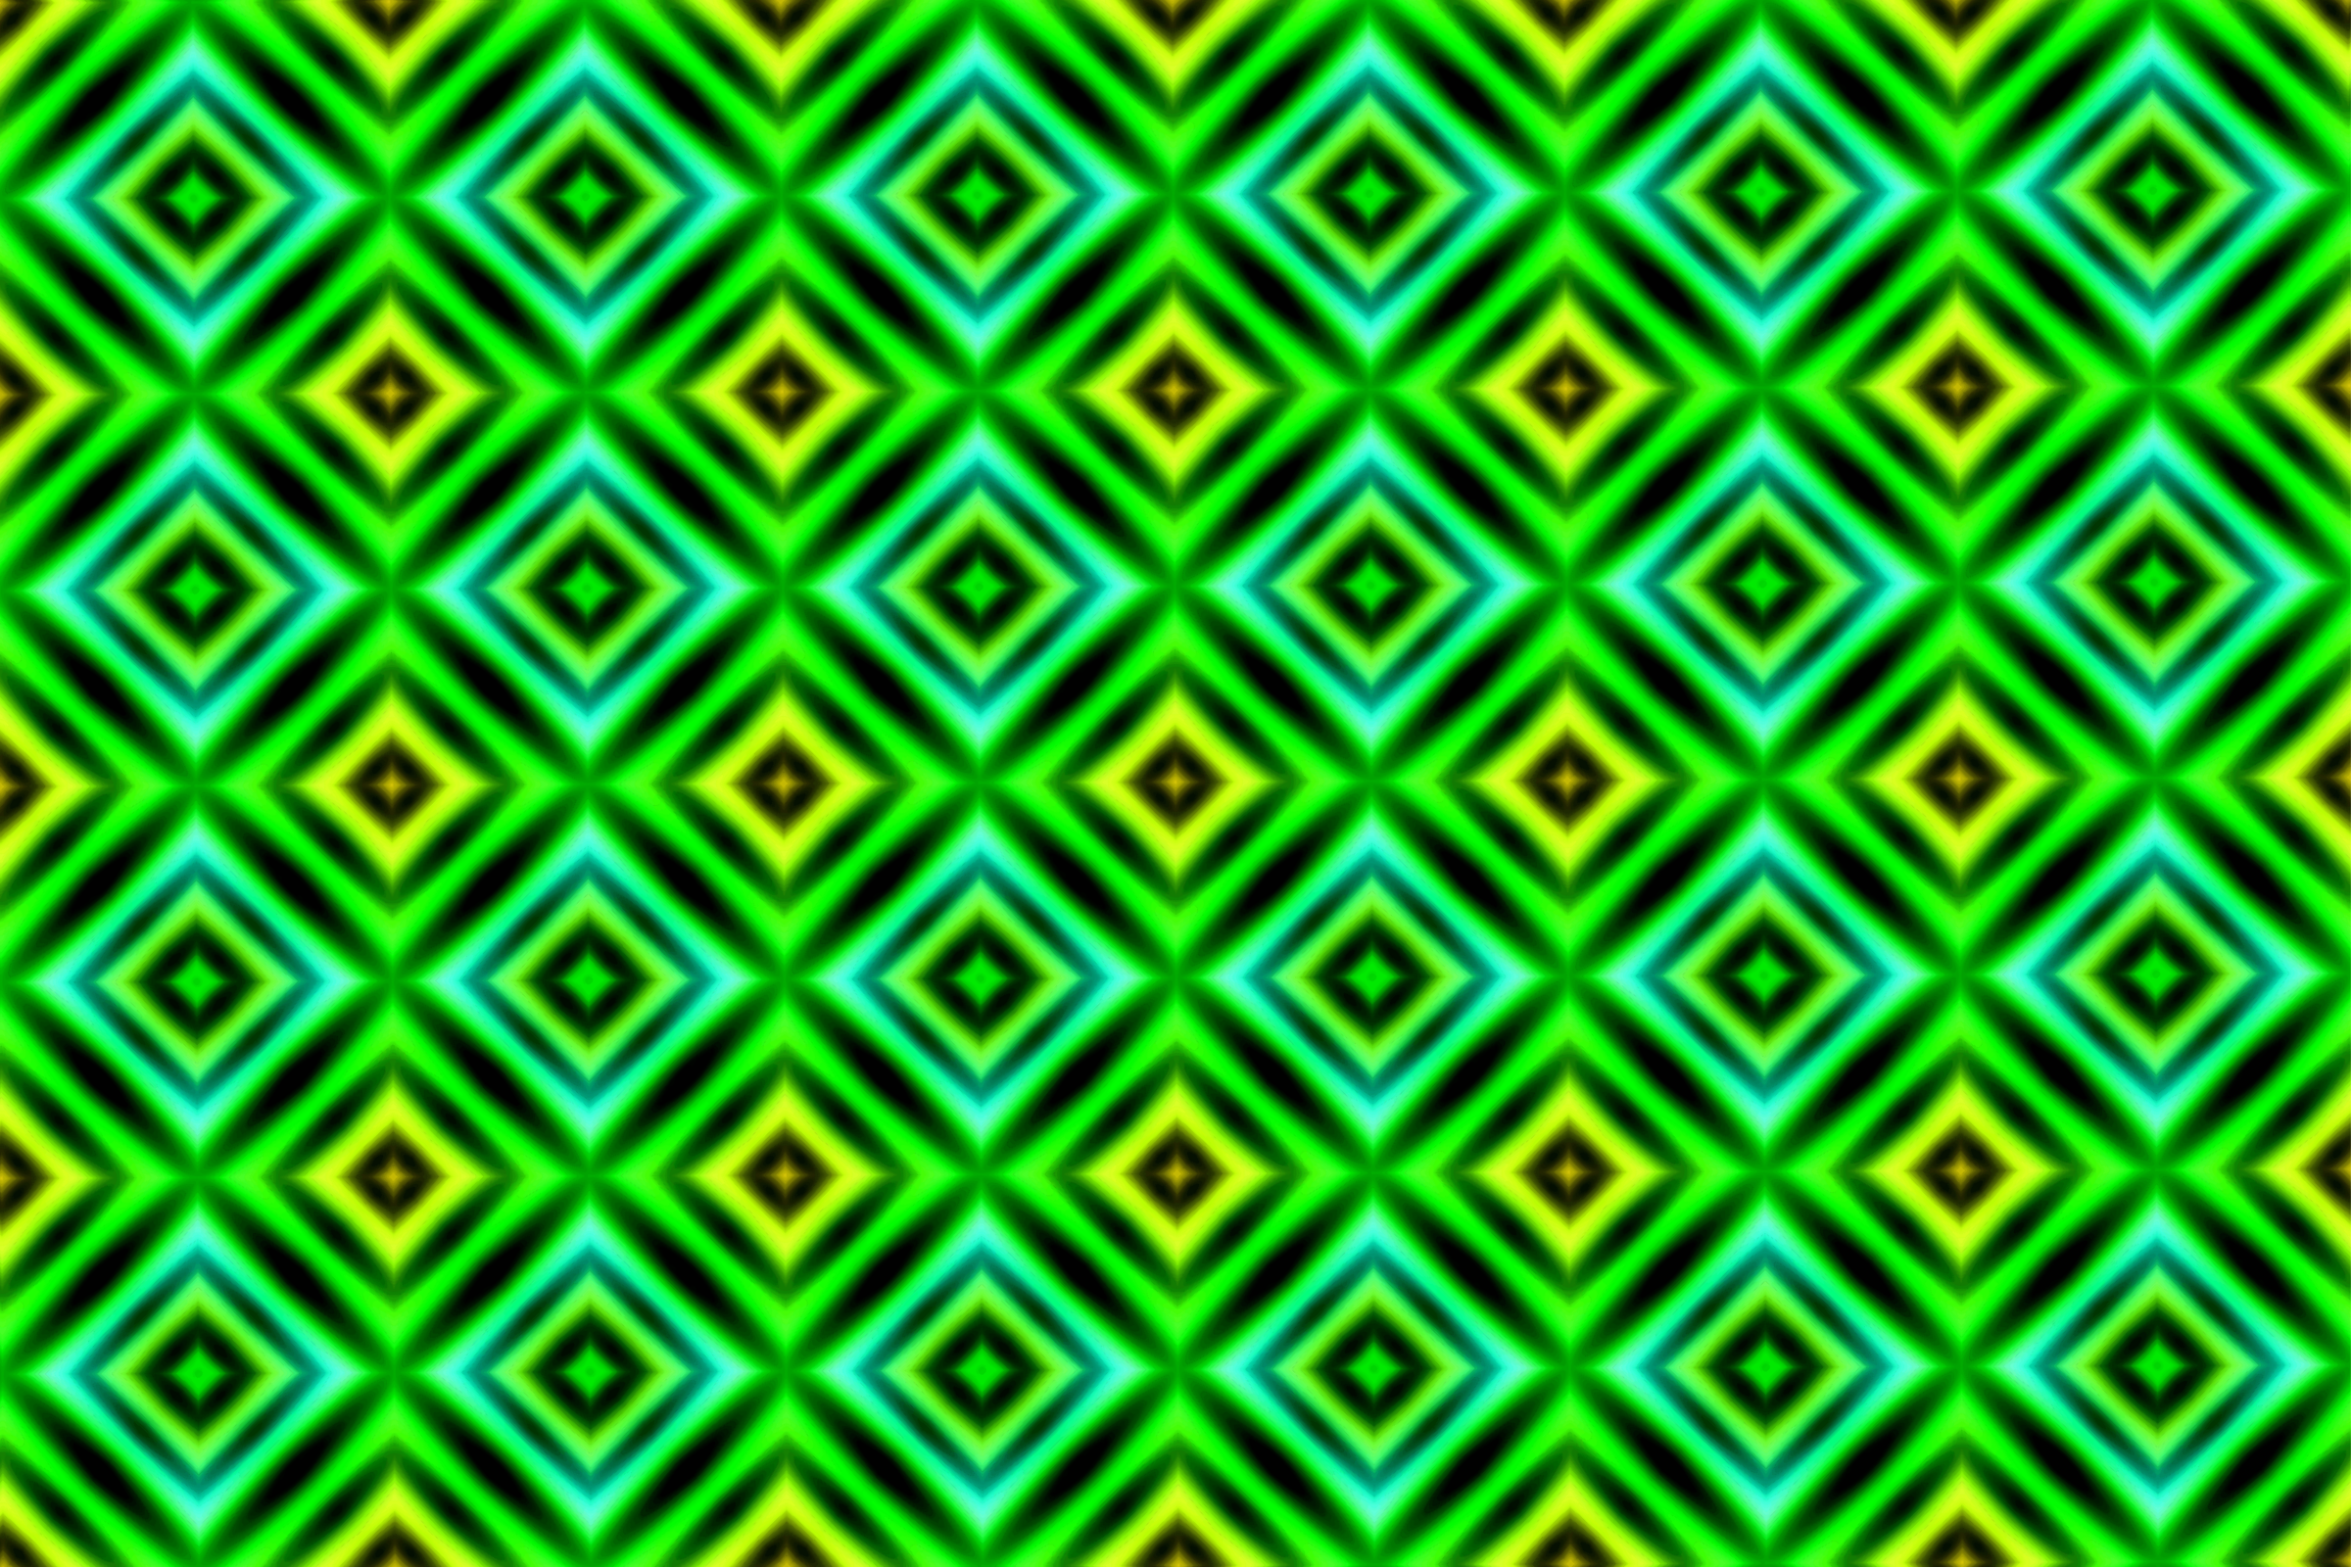 Background pattern 235 (colour 4) by Firkin